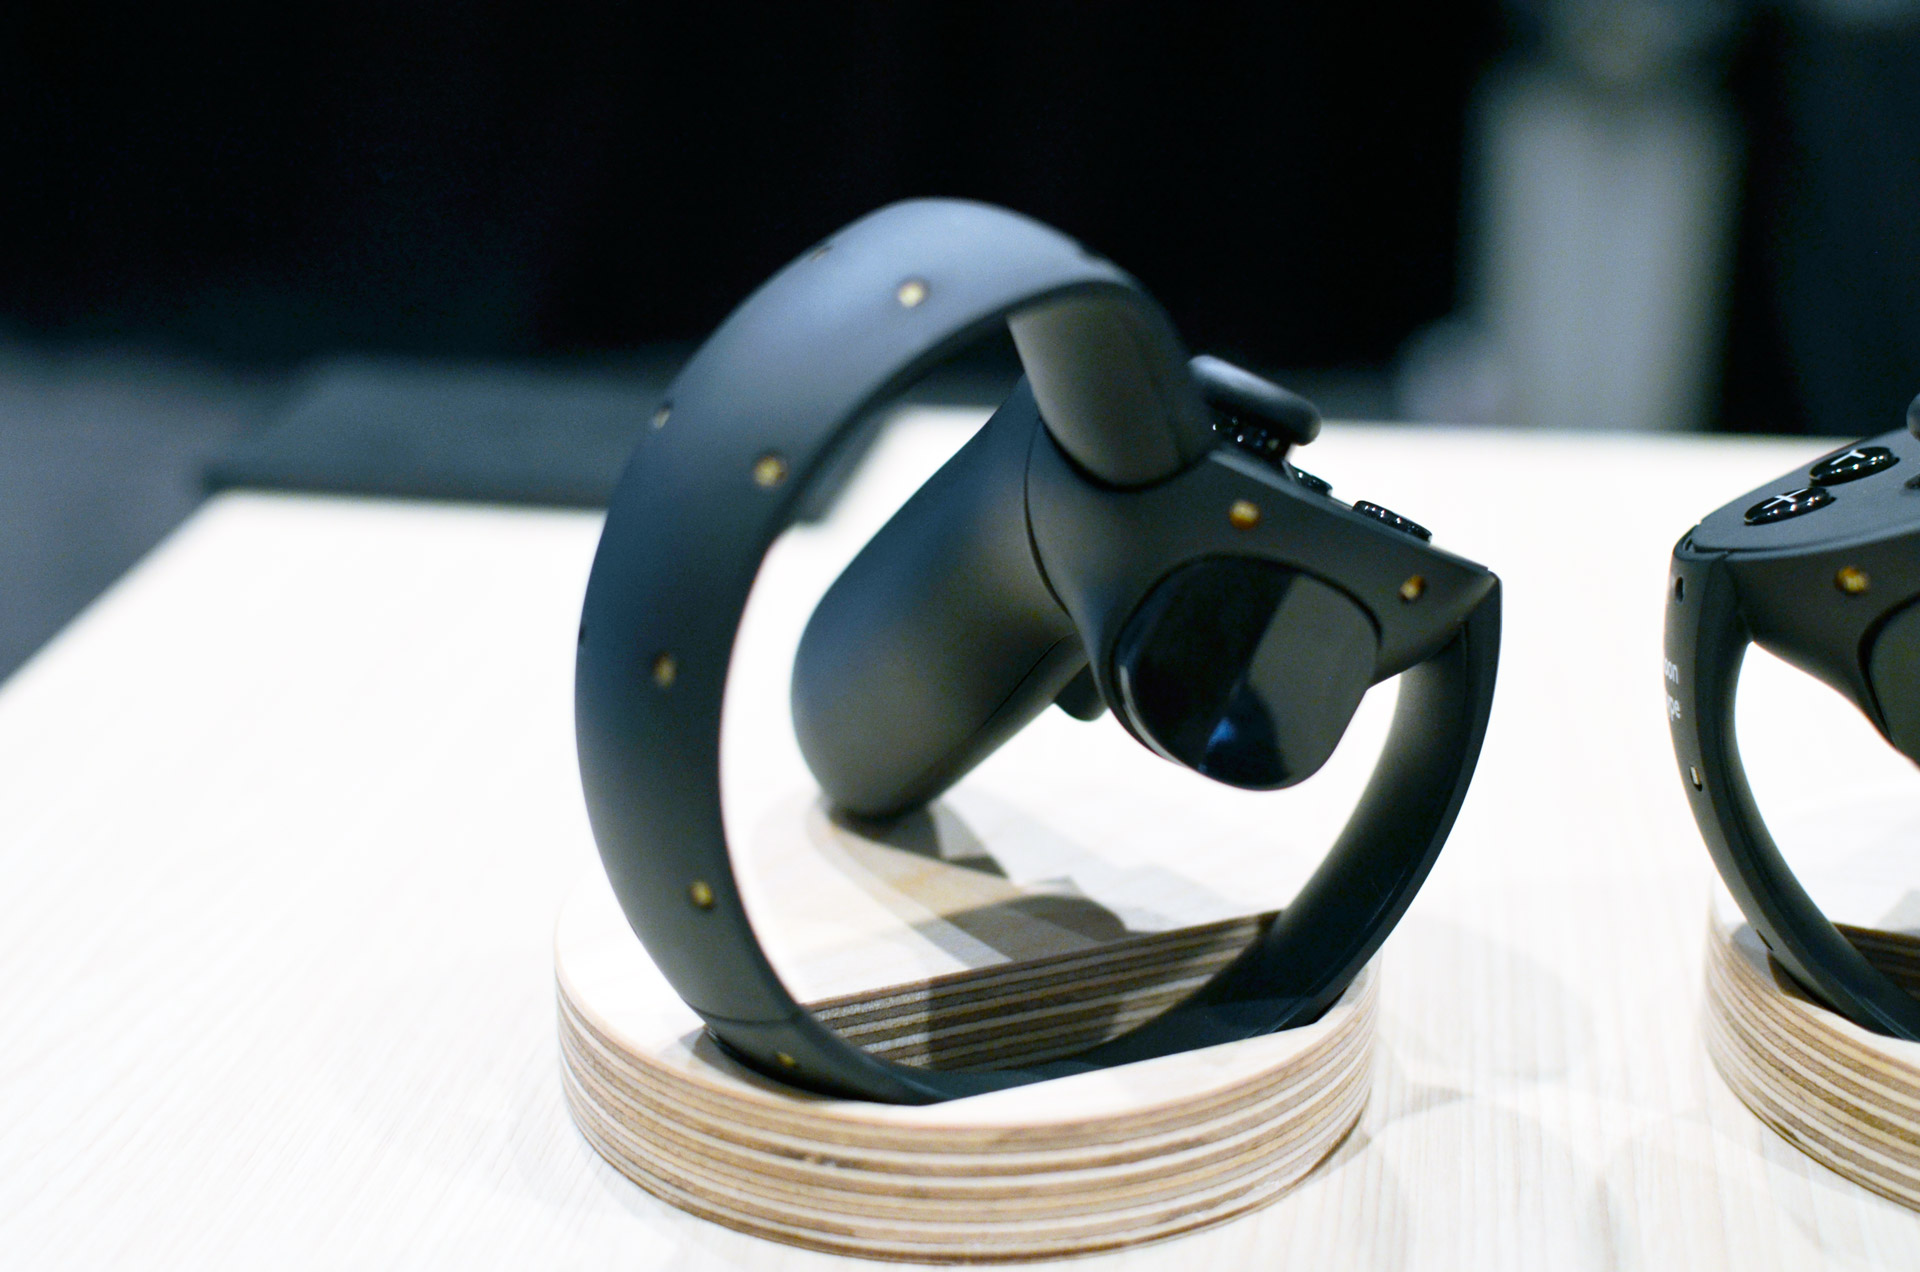 New Oculus Touch Documentation Reveals Capacitive Buttons